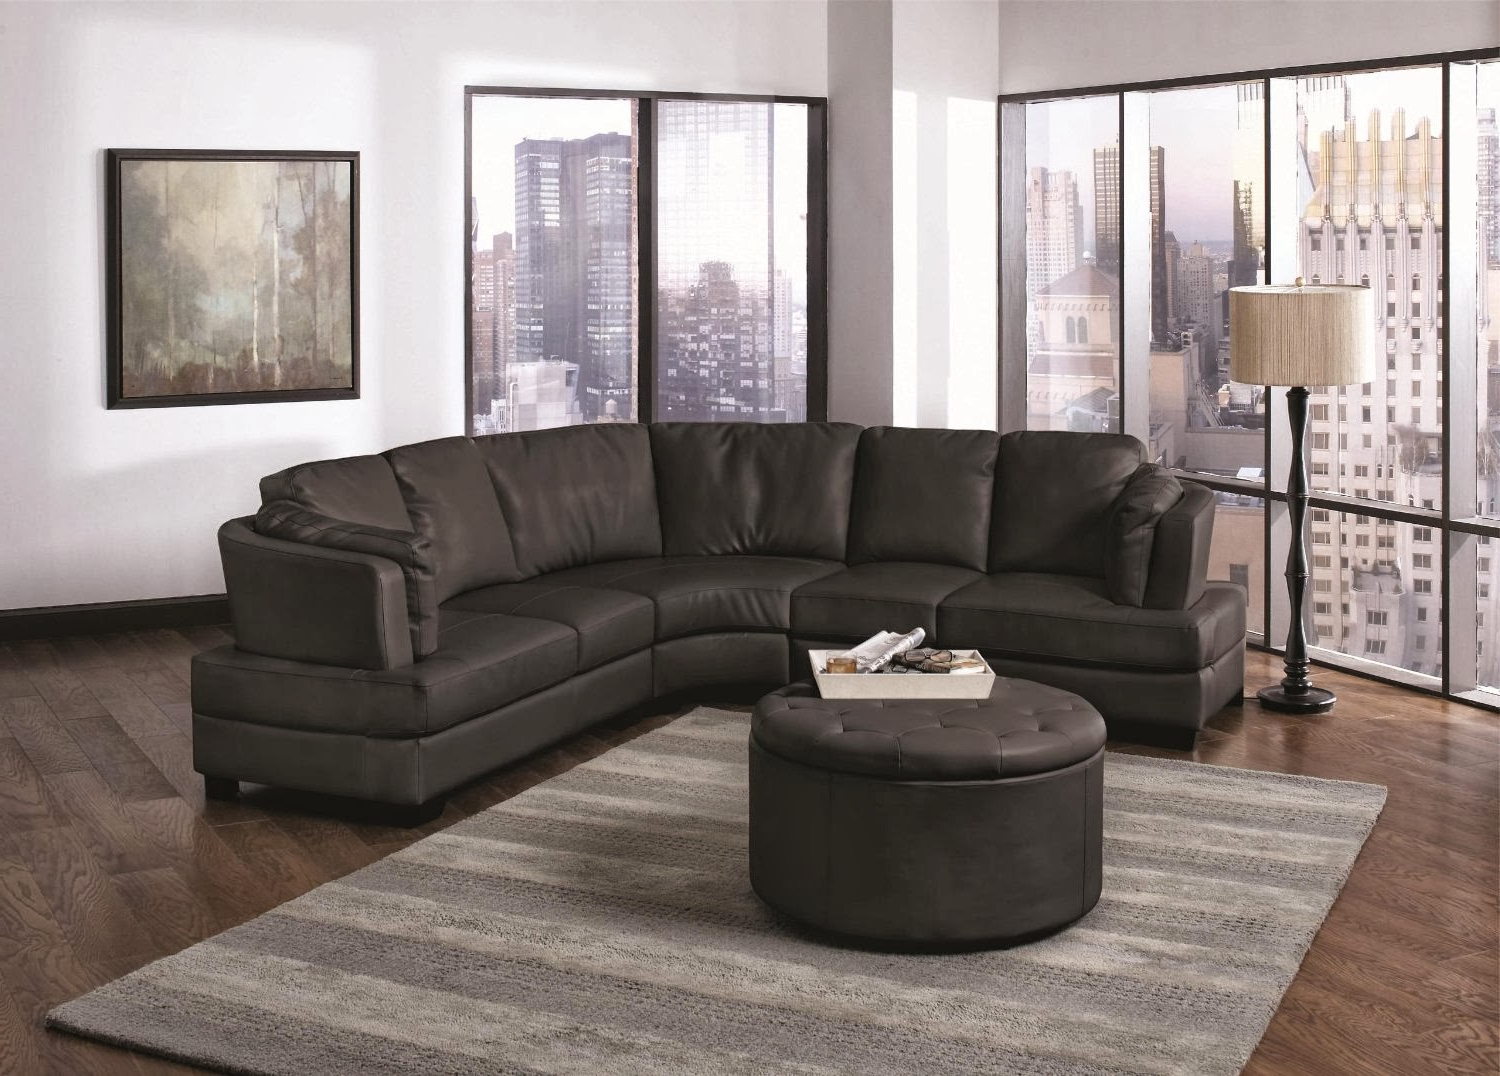 Marcus Oyster 6 Piece Sectionals With Power Headrest And Usb For Fashionable Design Your Own Reclining Sectional Sofa Online (View 5 of 20)